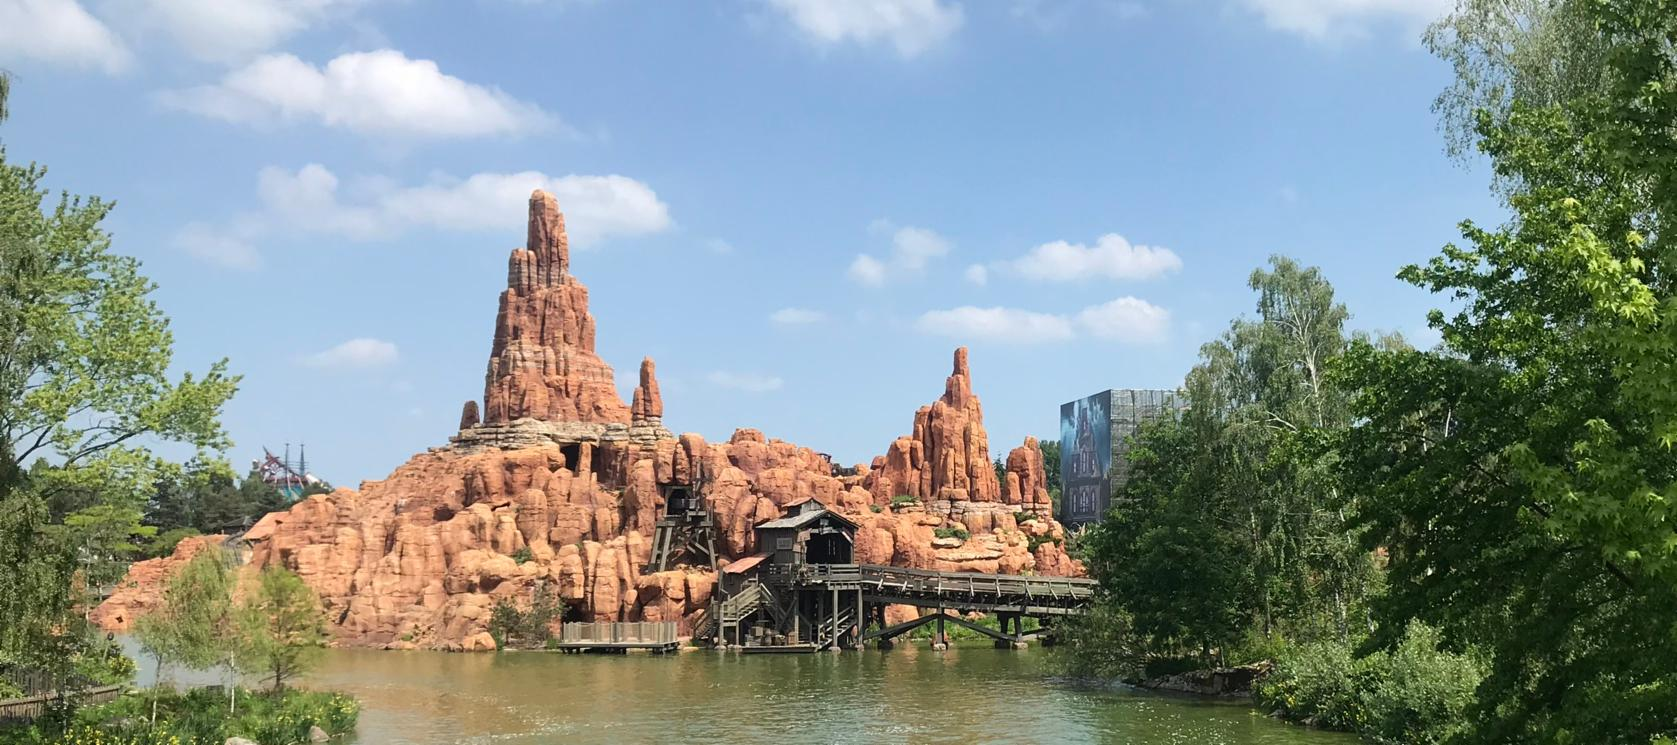 View of Big Thunder Mountain in Frontierland in Disneyland Paris